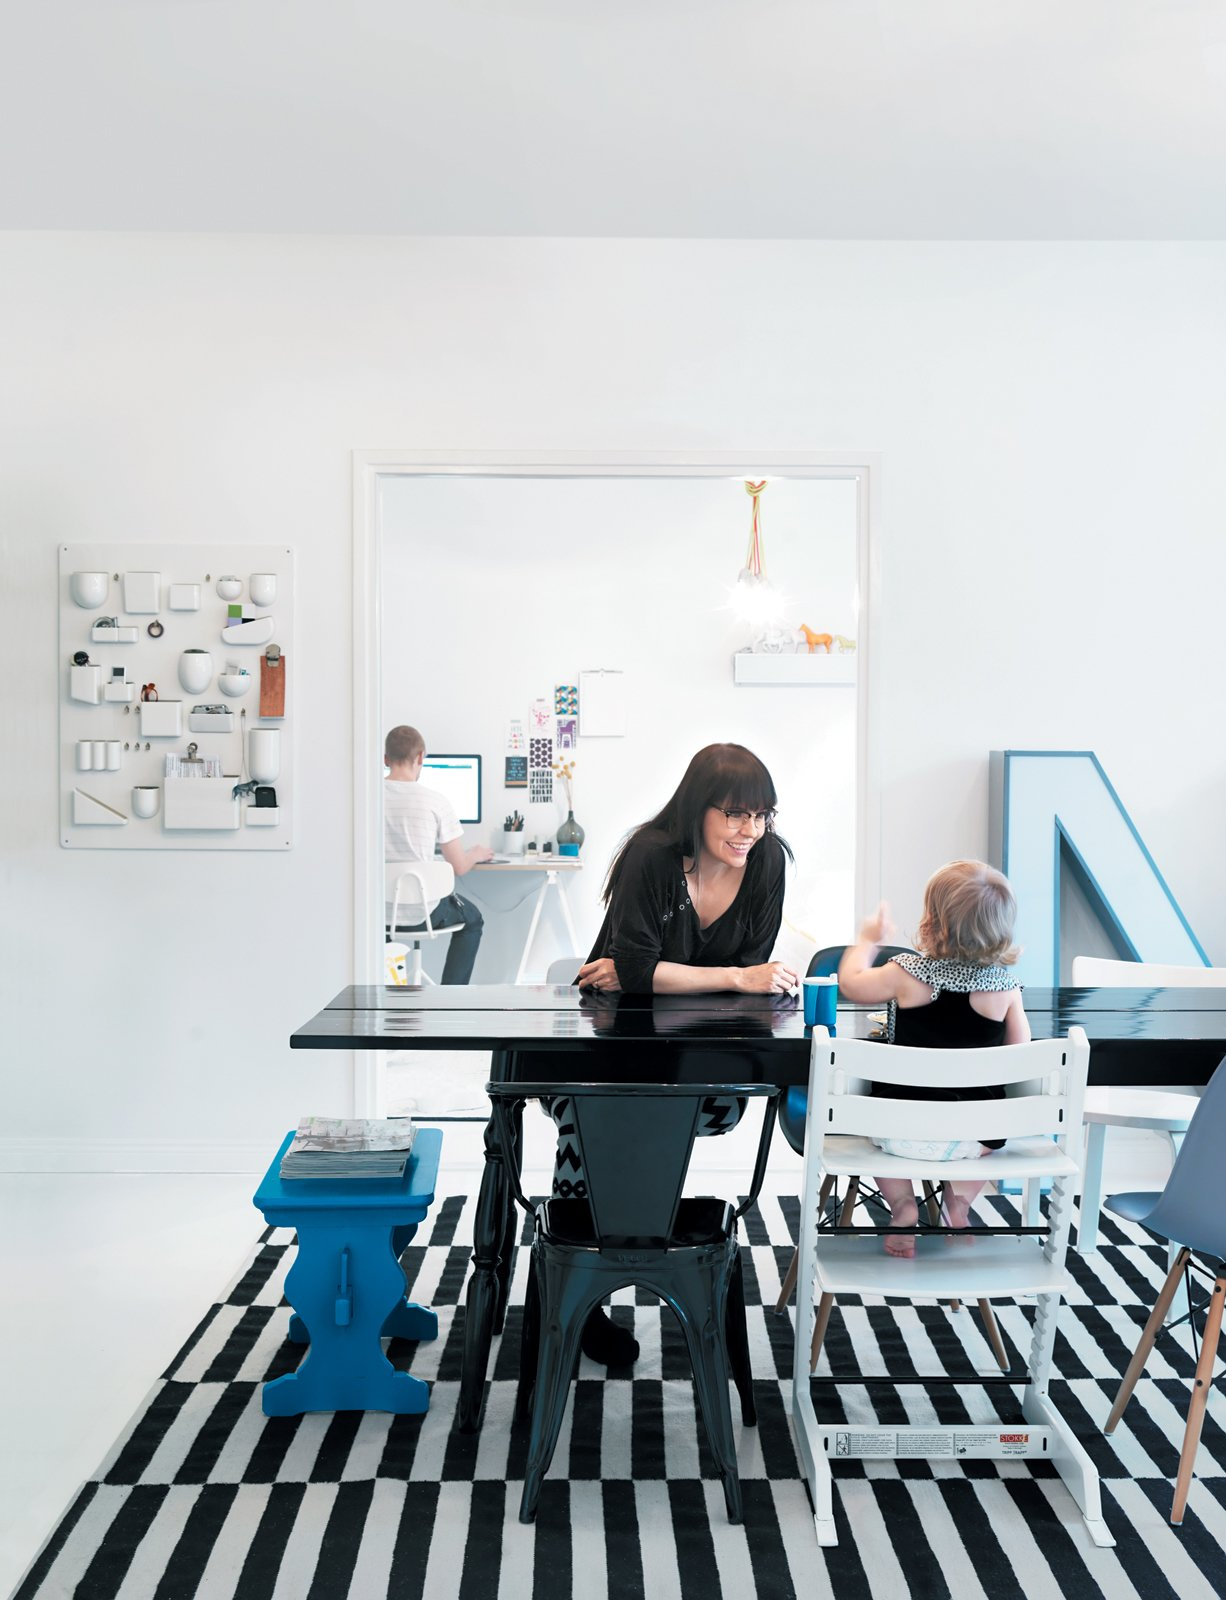 """Susanna Vento, pictured here with her daughter Varpu, is a Helsinki-based editor, stylist, and interior designer. Asked about her design approach in her own apartment, she says: """"As an interior designer I choose new designs for my clients, but for my own home, I tend to prefer crafty or old stuff. If I buy something, I want to buy only things that stand the test of time. But even better is to buy nothing at all and do-it-yourself!"""""""